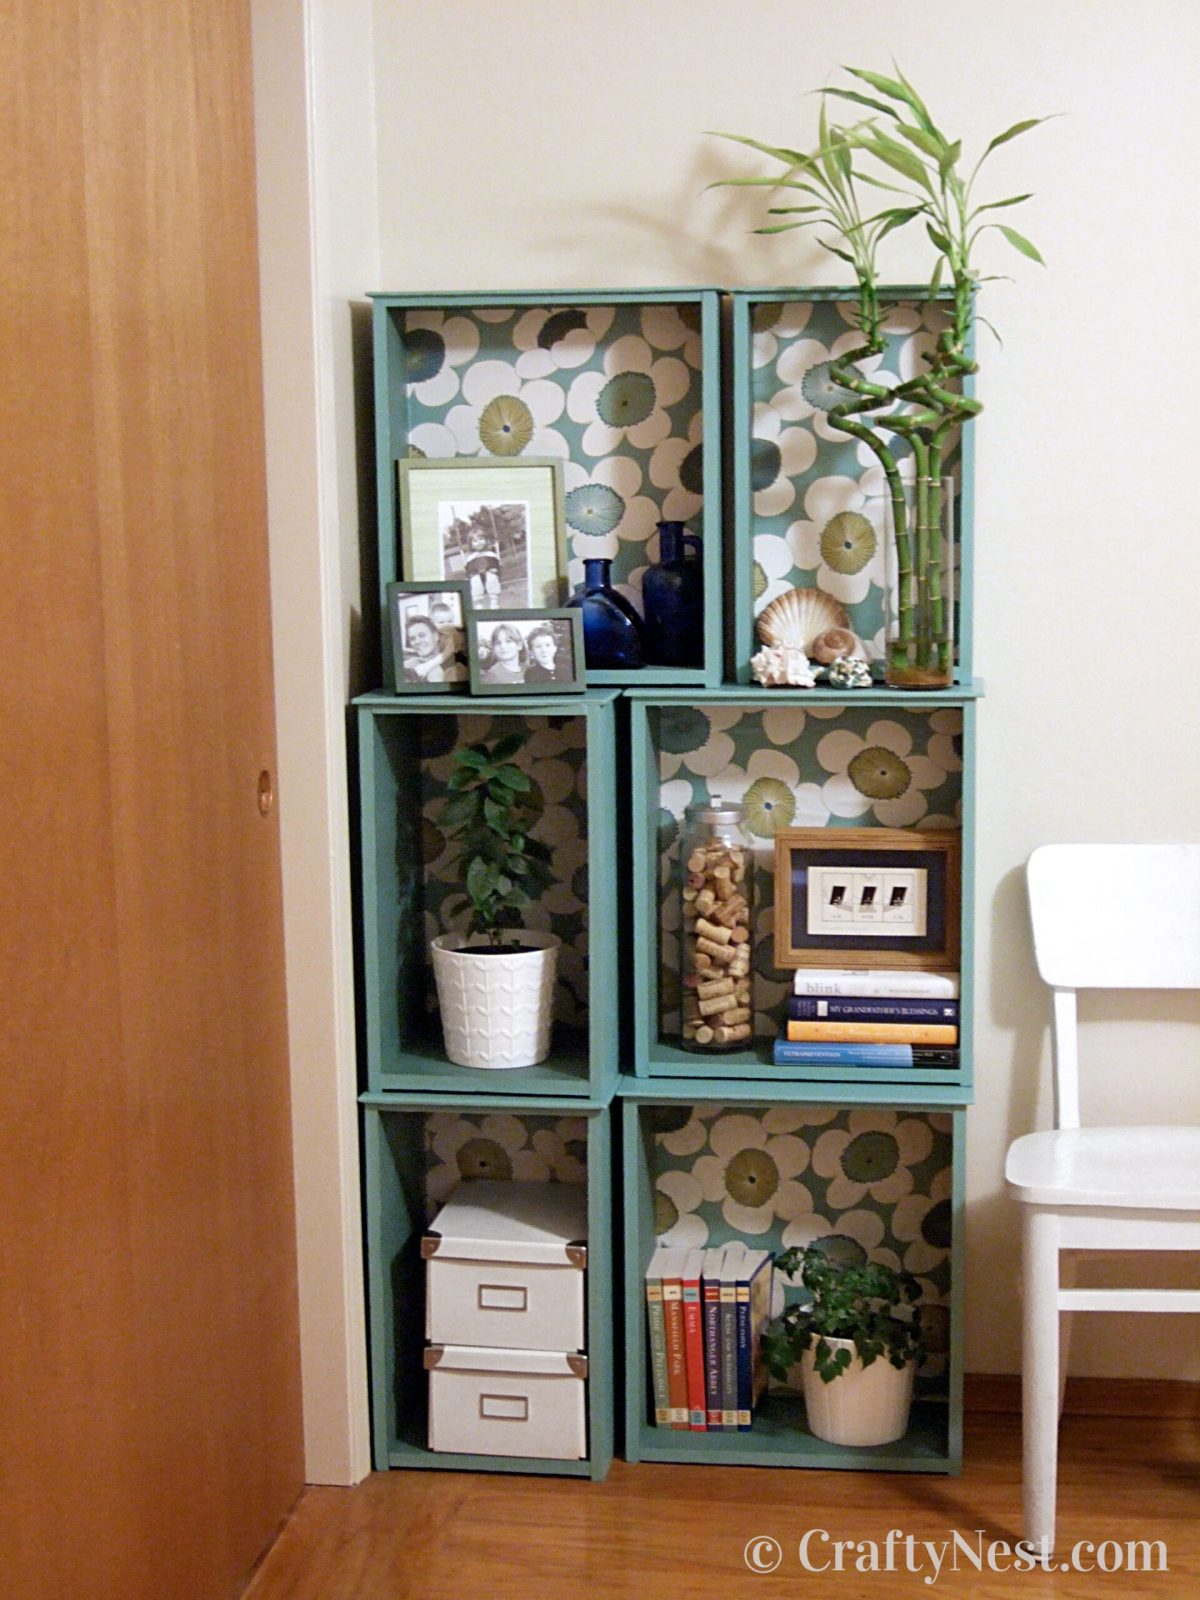 Drawers made into a bookcase, photo